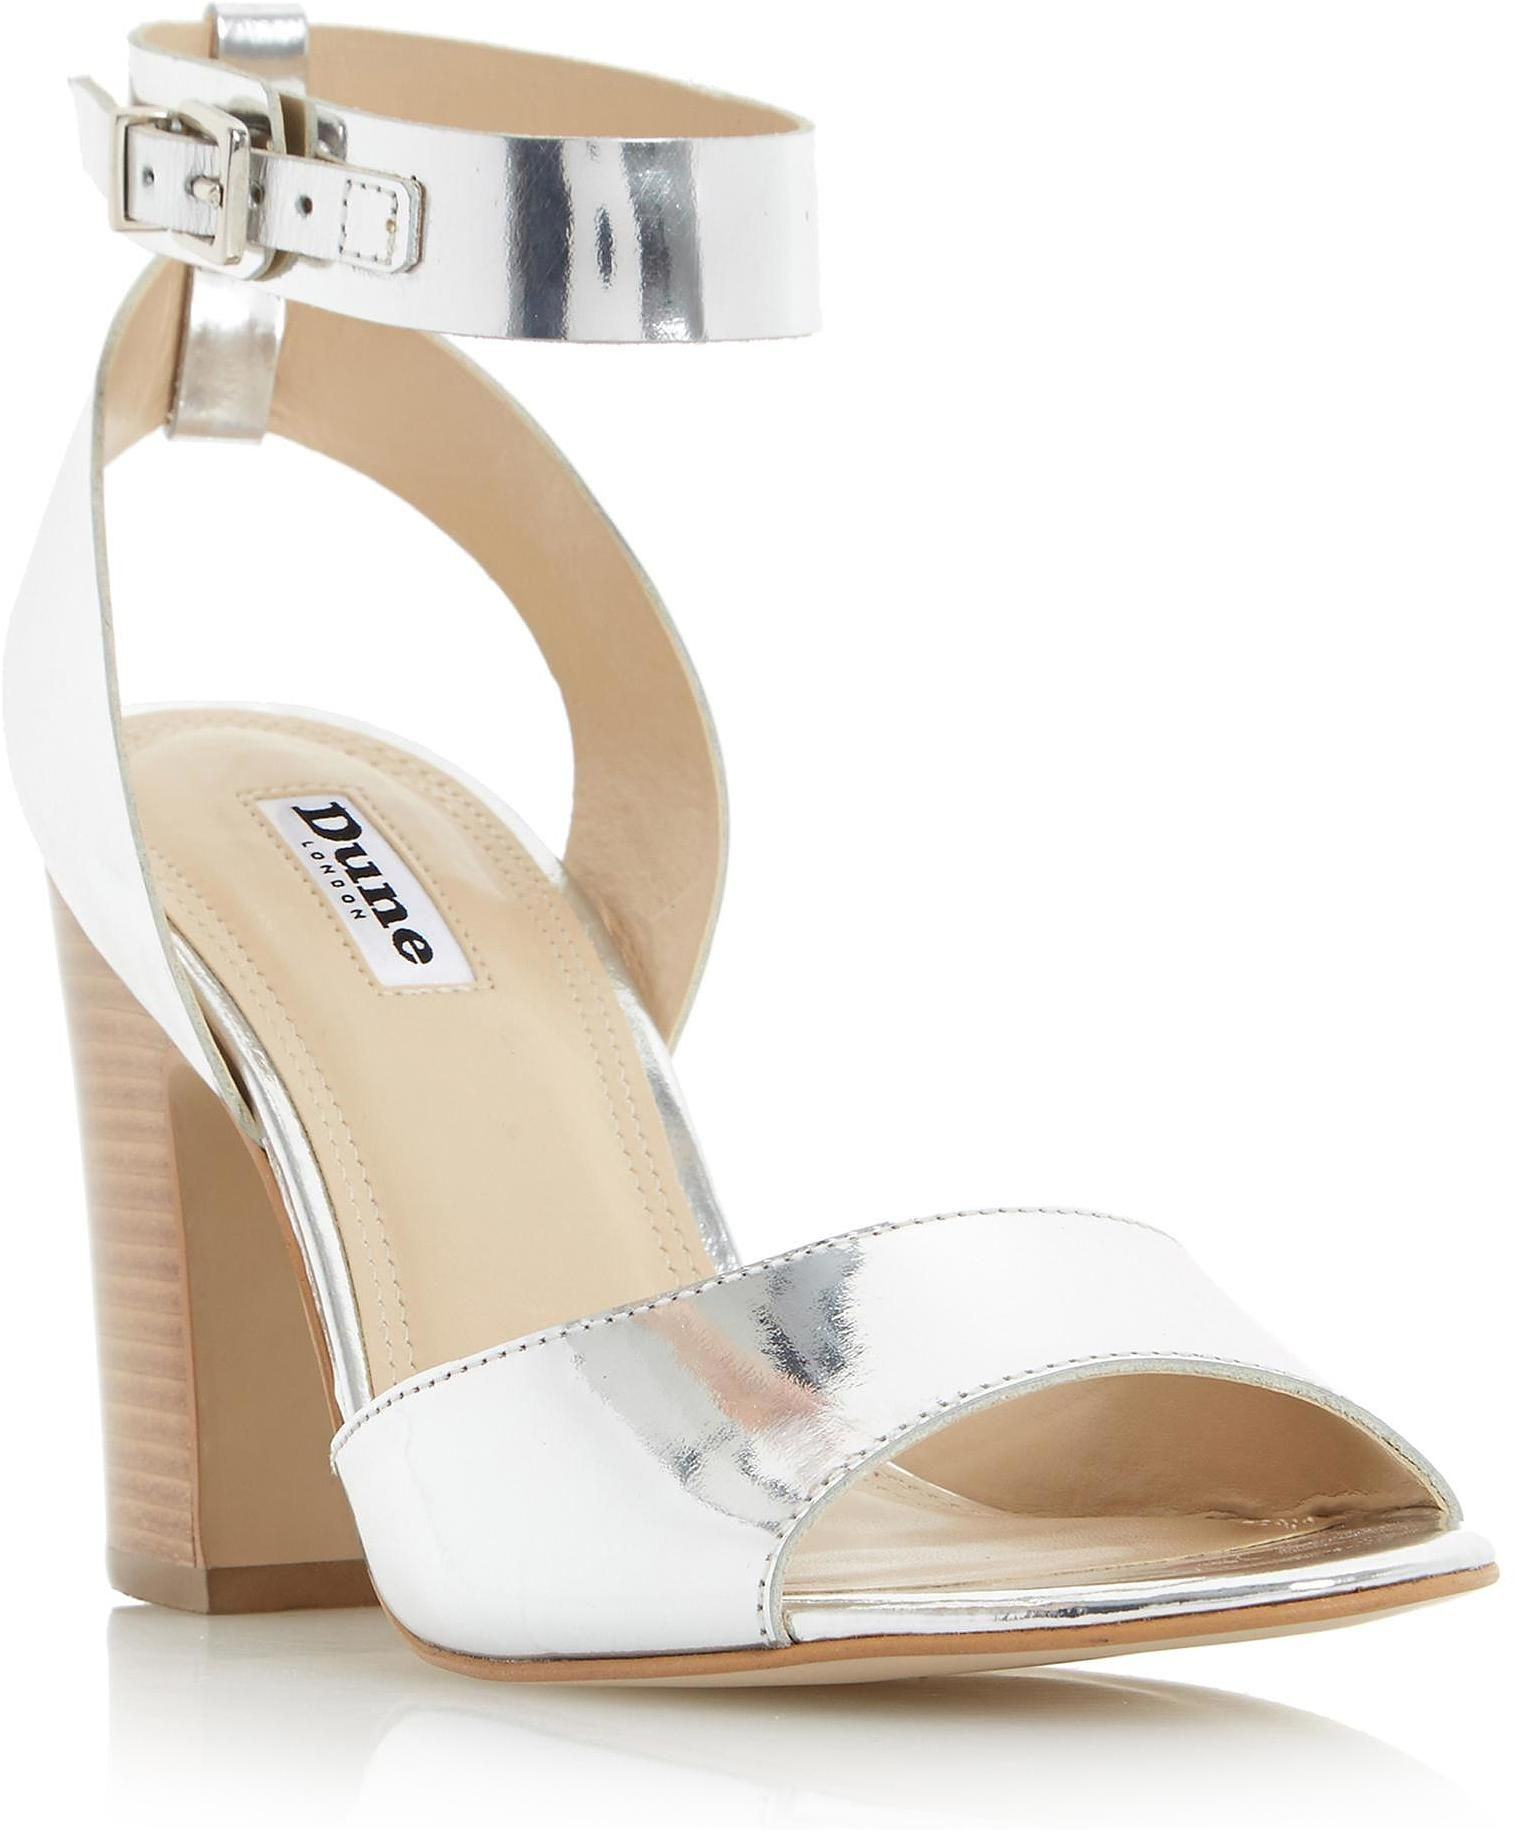 c92097fc69c65 Womens silver jamila two part ankle strap sandal from Dune - £80 at  ClothingByColour.com